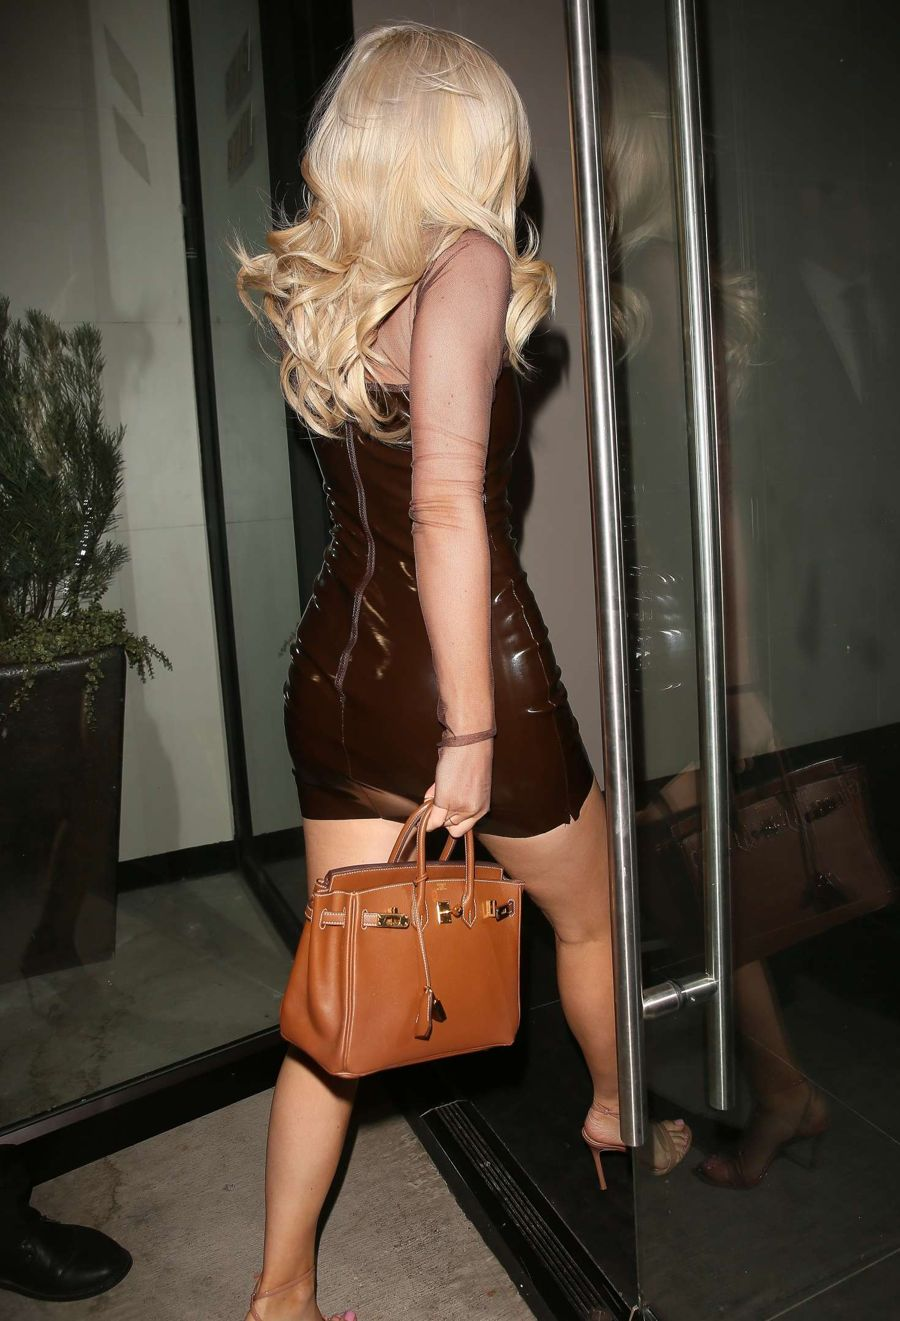 Kylie Jenner in Short Leather Dress at Catch Restaurant